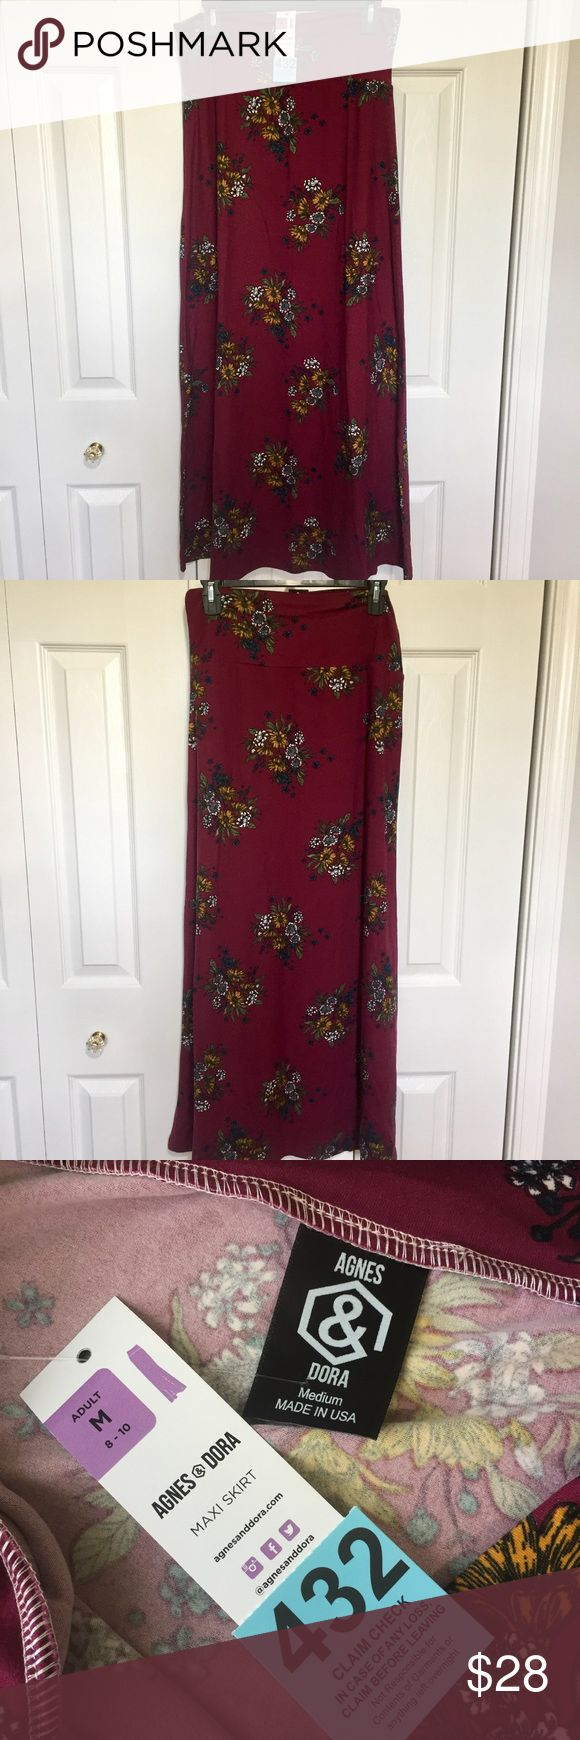 Agnes and Dora maxi skirt #432 Agnes and Dora maxi skirt. I used to be a rep for this company. This is a floor length skirt with yoga waistband. You can roll or fold waistband to adjust length. Measurements taken flat and in inches. Waist 151/2. length 401/2. colors: cranberry, mustard, white, olive, and blue. Agnes & Dora Skirts Maxi